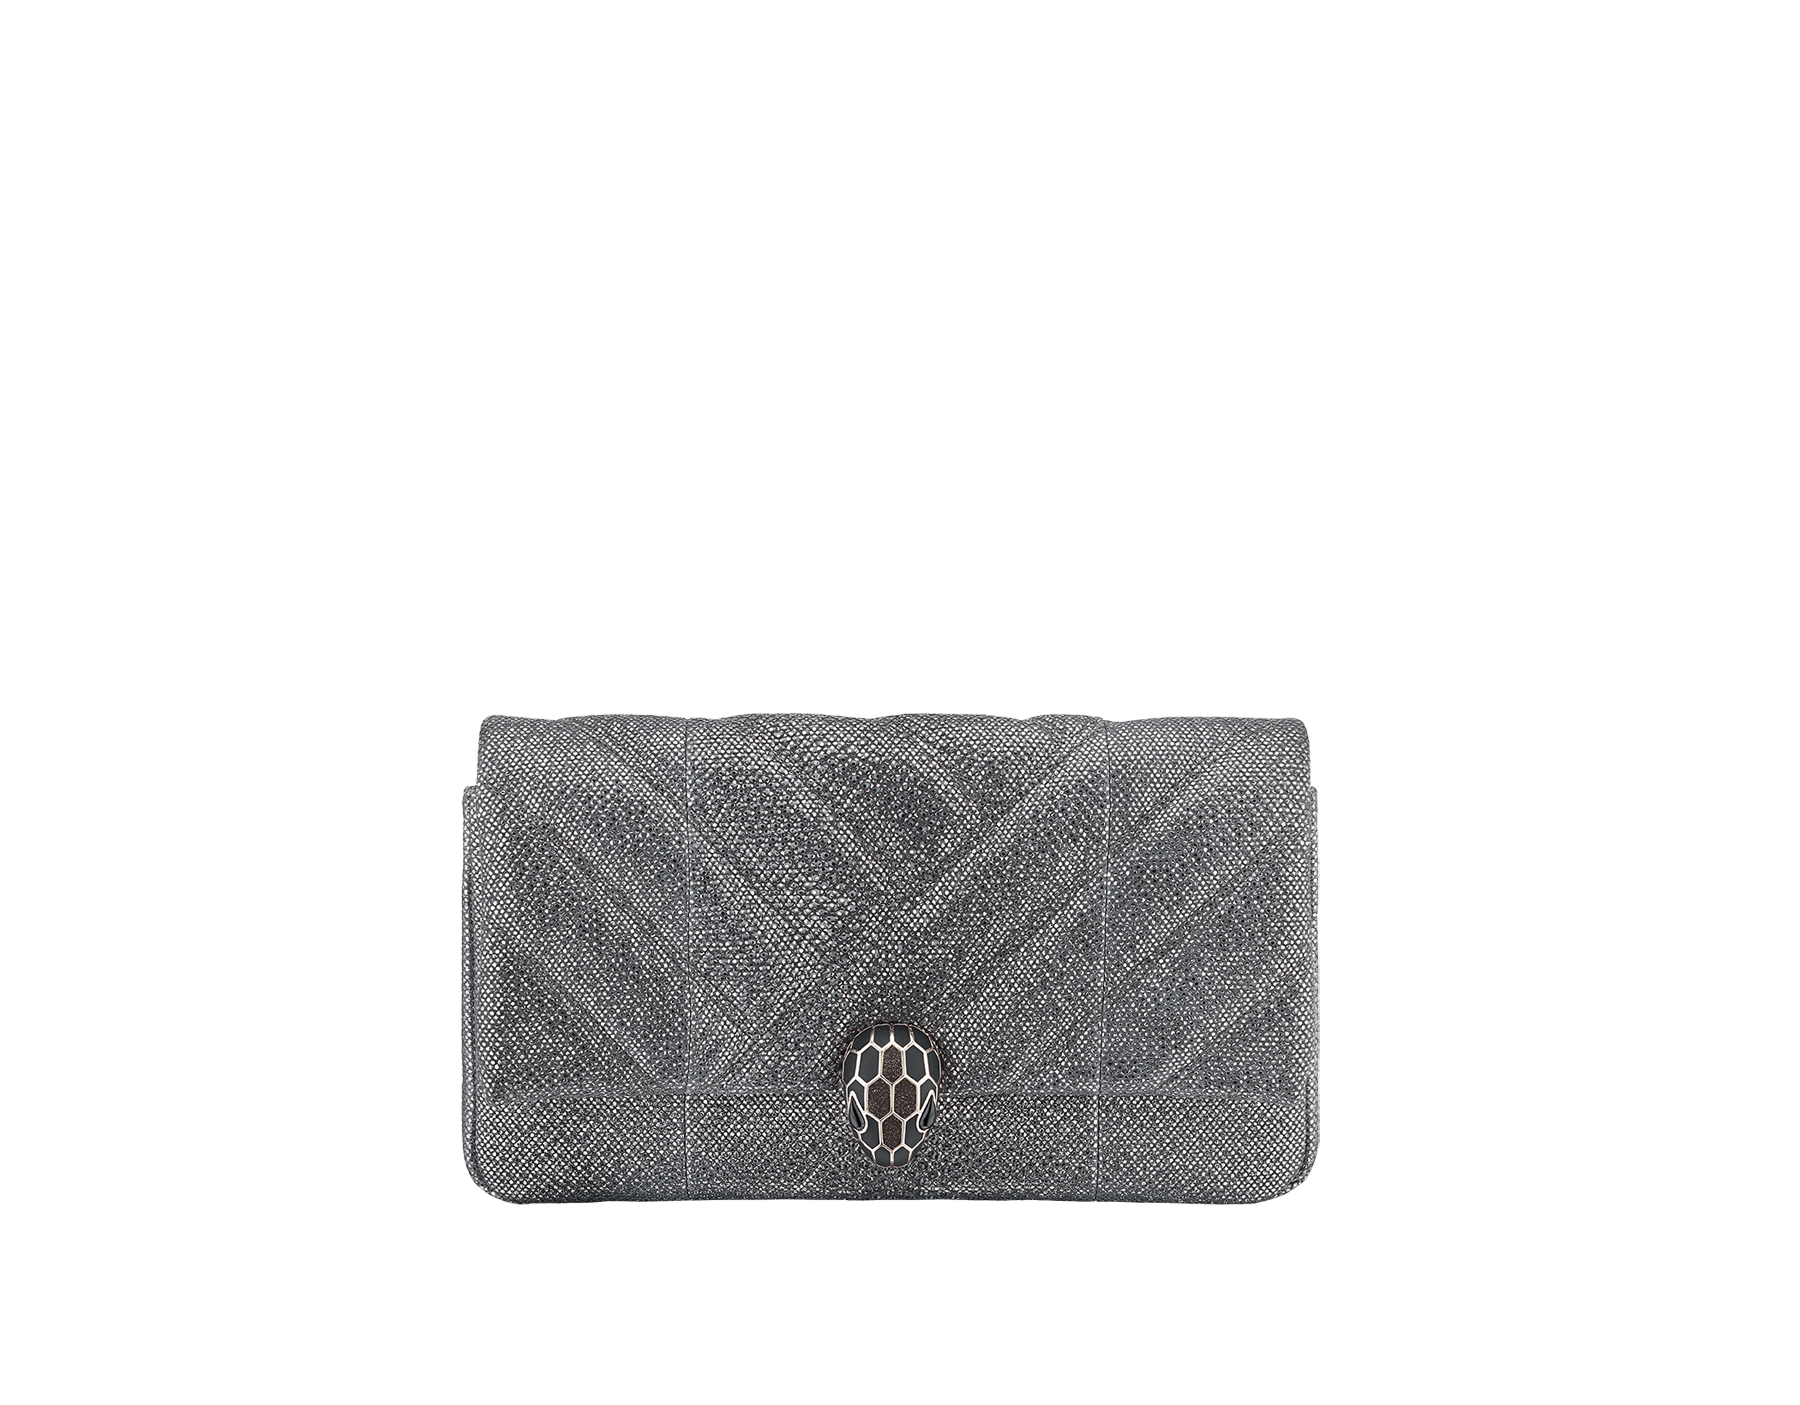 Serpenti Cabochon clutch bag in charcoal diamond metallic karung skin, with a graphic motif. Brass light gold plated tempting snake head closure in black and glitter charcoal diamond enamel and black onyx eyes. 289303 image 1